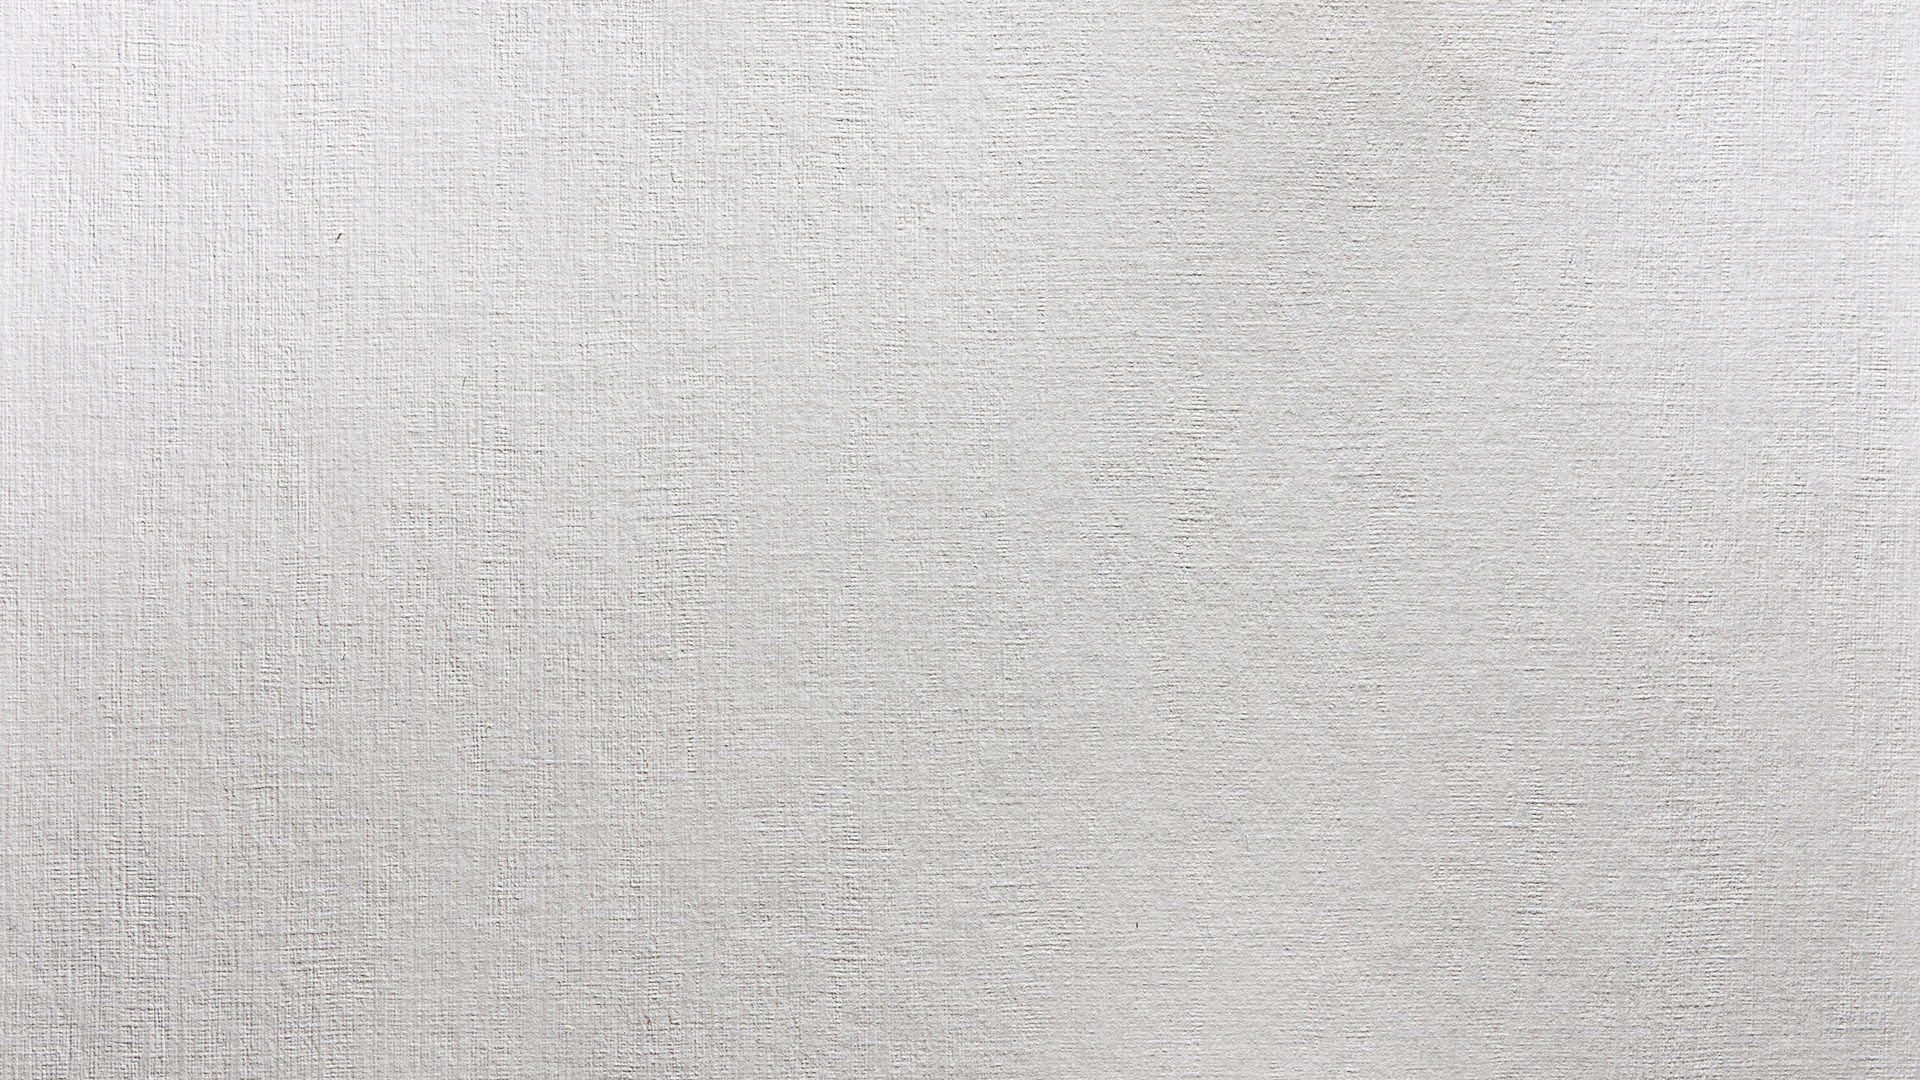 natural paper background texture hd 5a0b